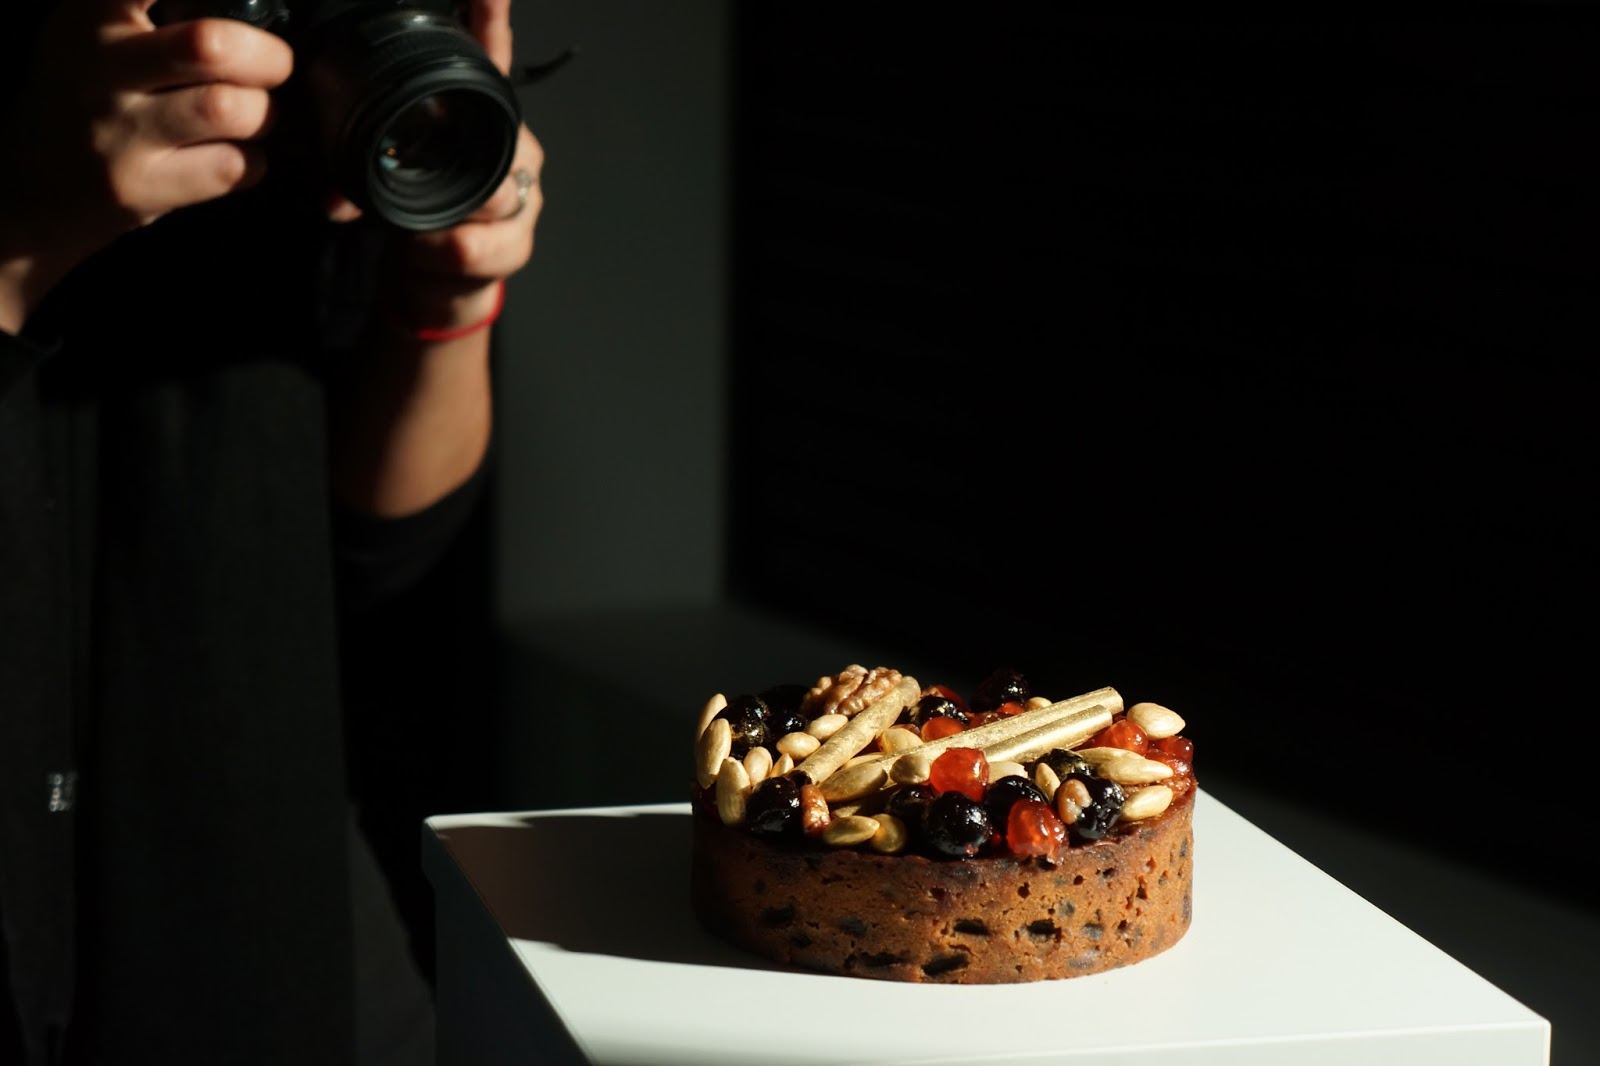 food photography in action